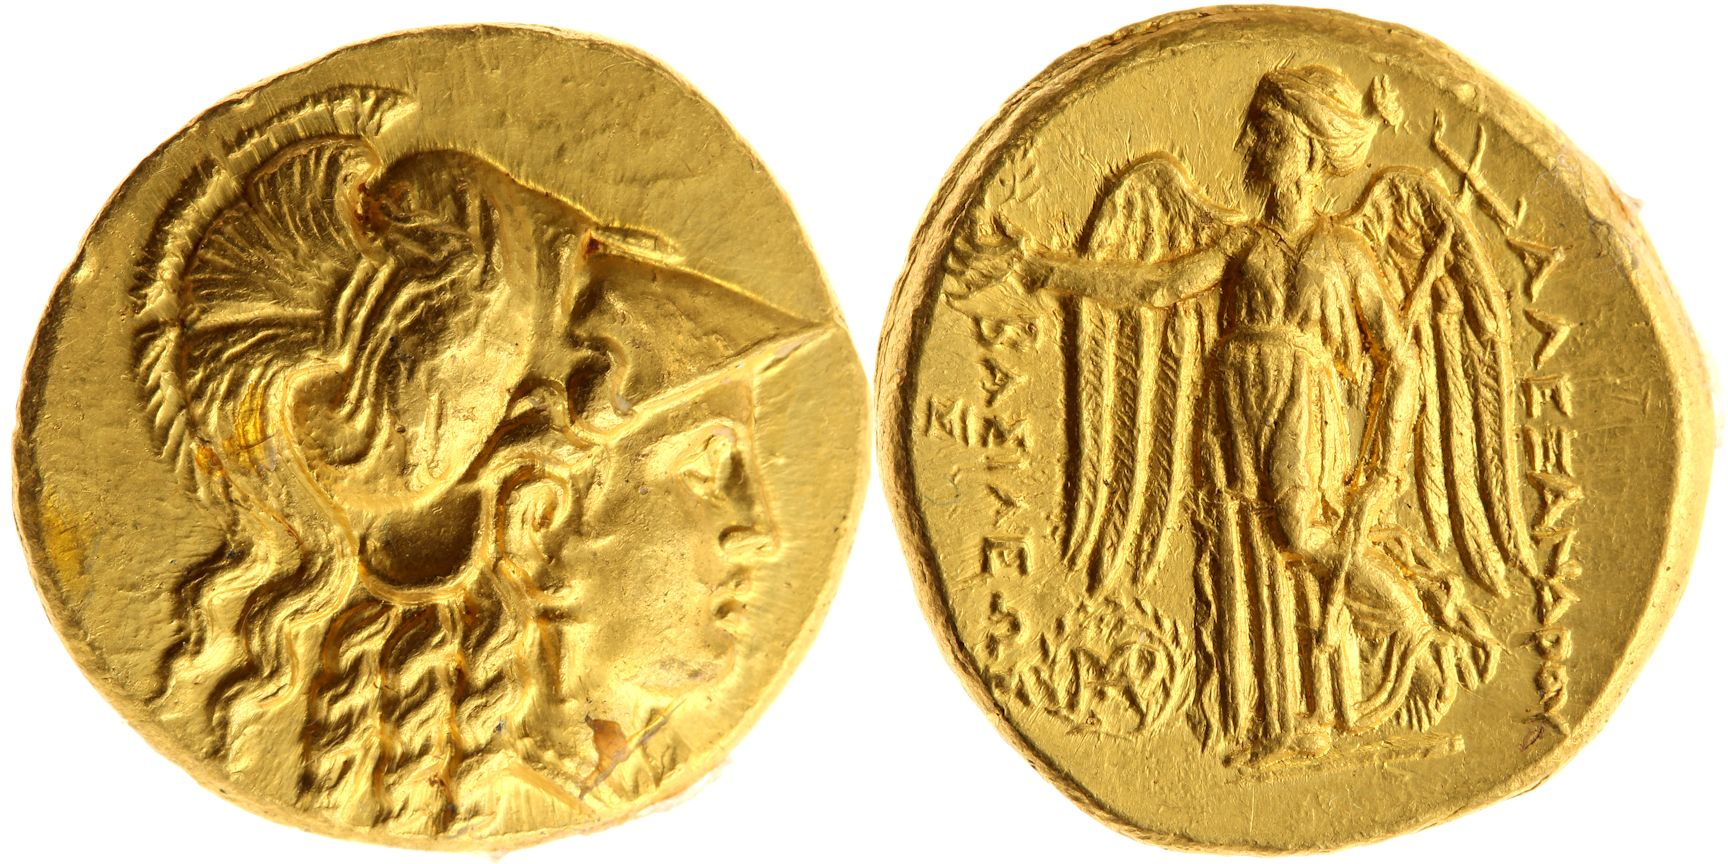 A gold stater of Seleucus